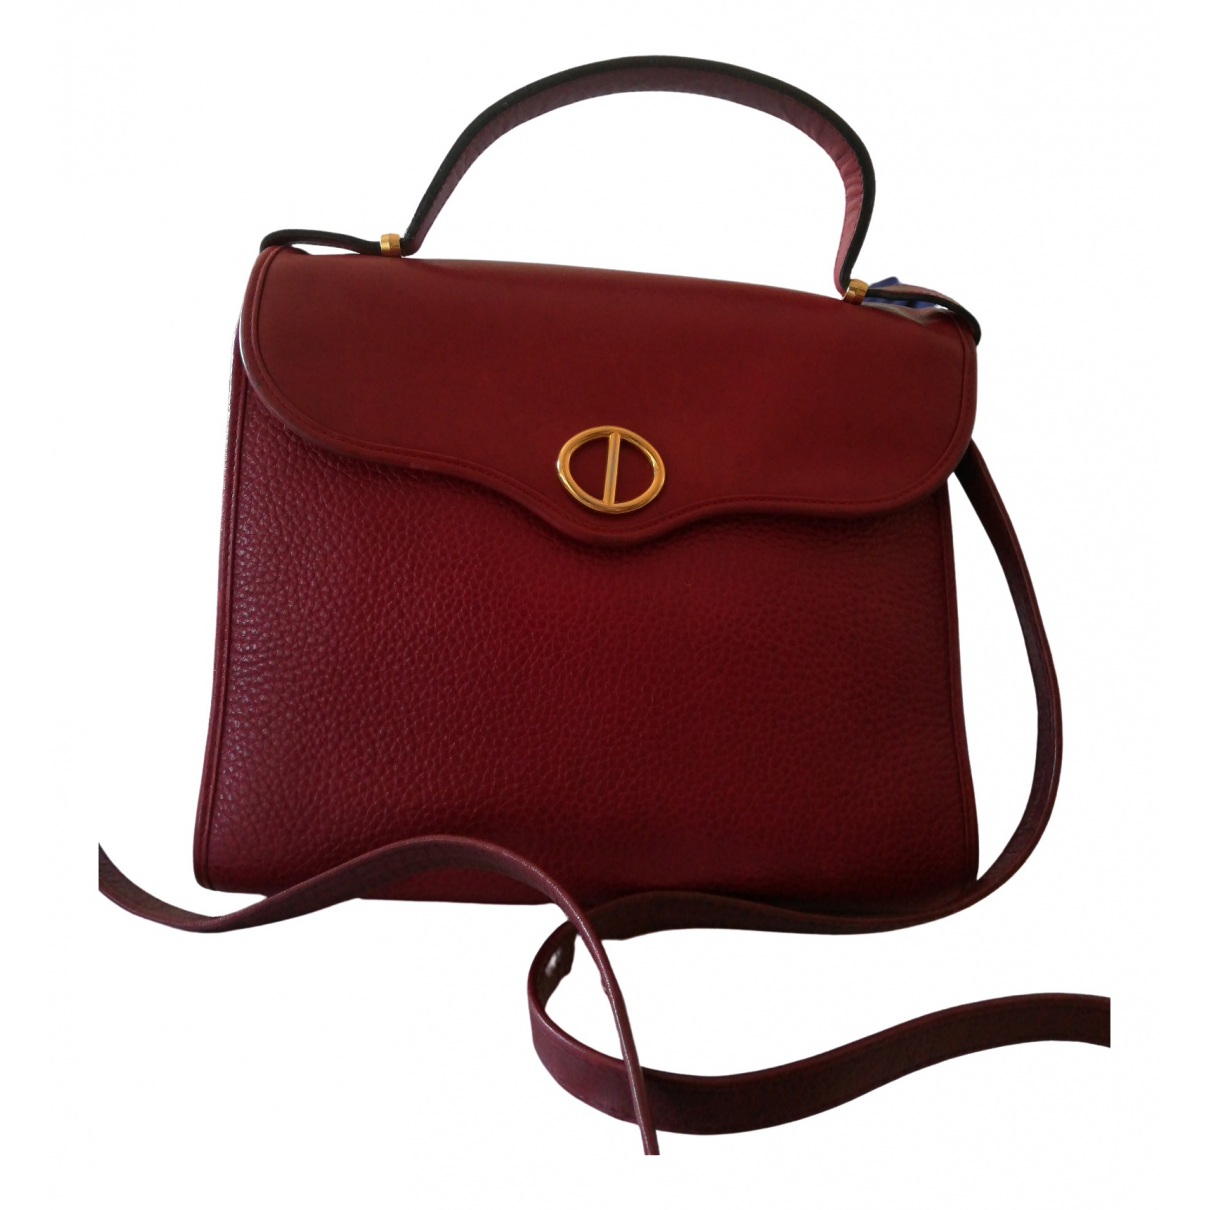 Dior \N Burgundy Leather handbag for Women \N